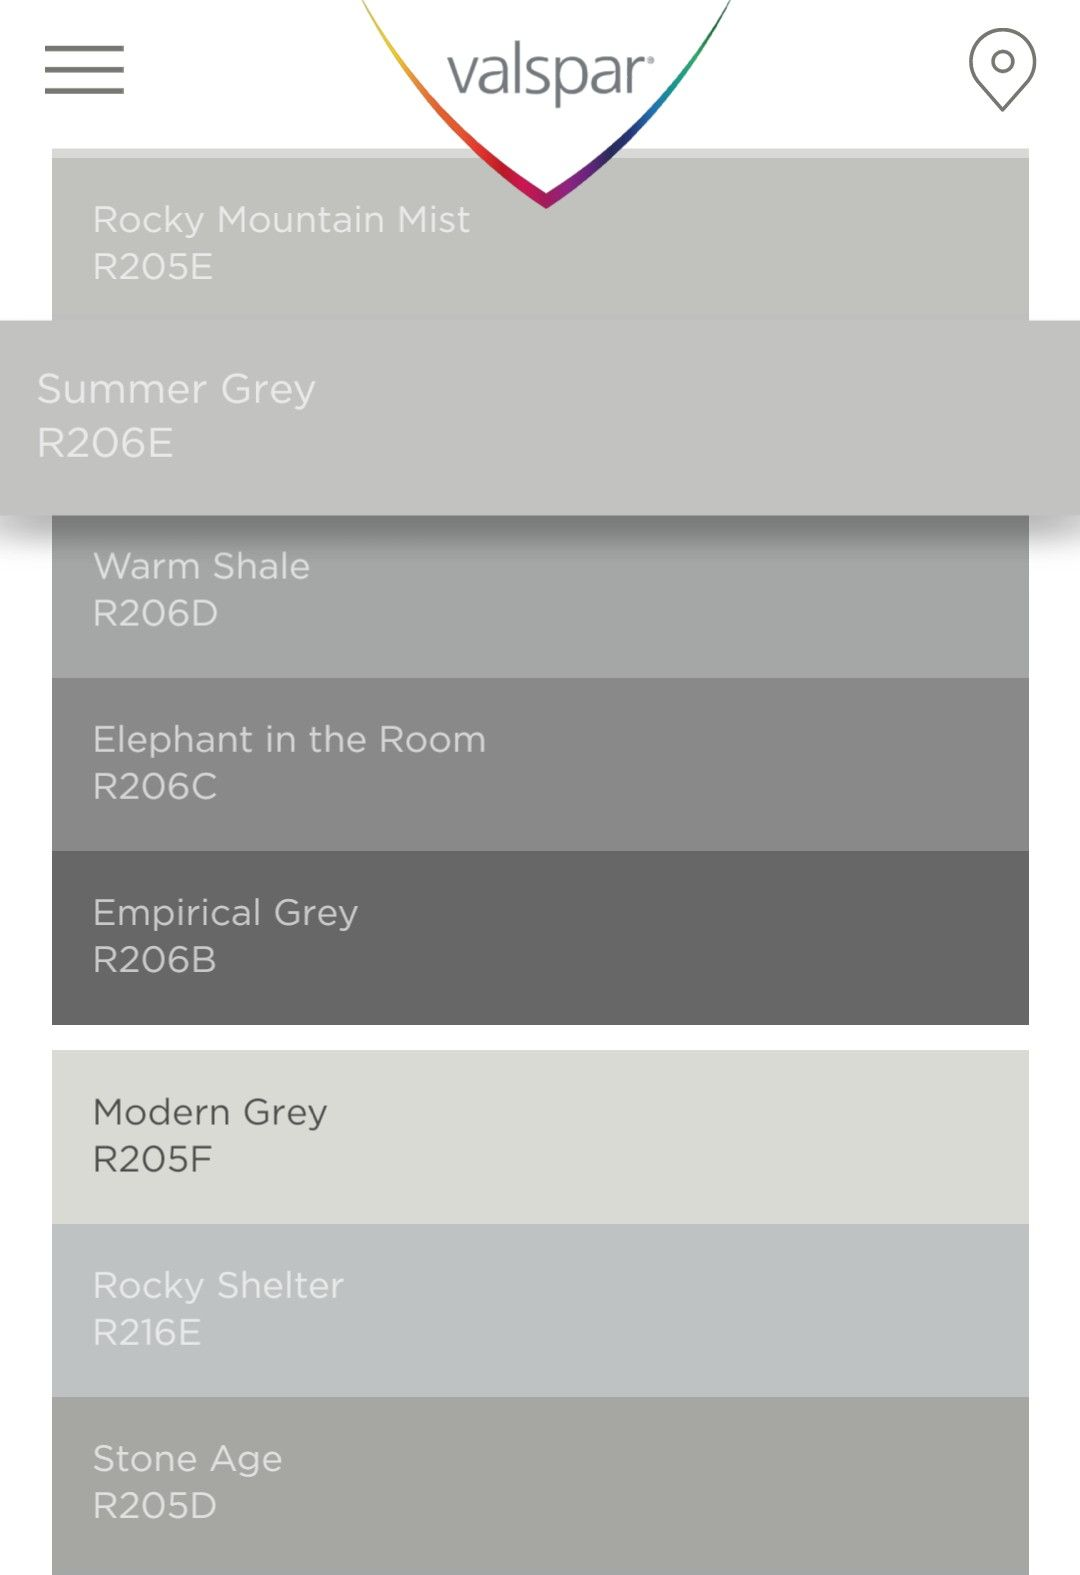 Valspar Paint Summer Grey Walls Valspar Paint Colors Gray Valspar Paint Lowes Paint Colors